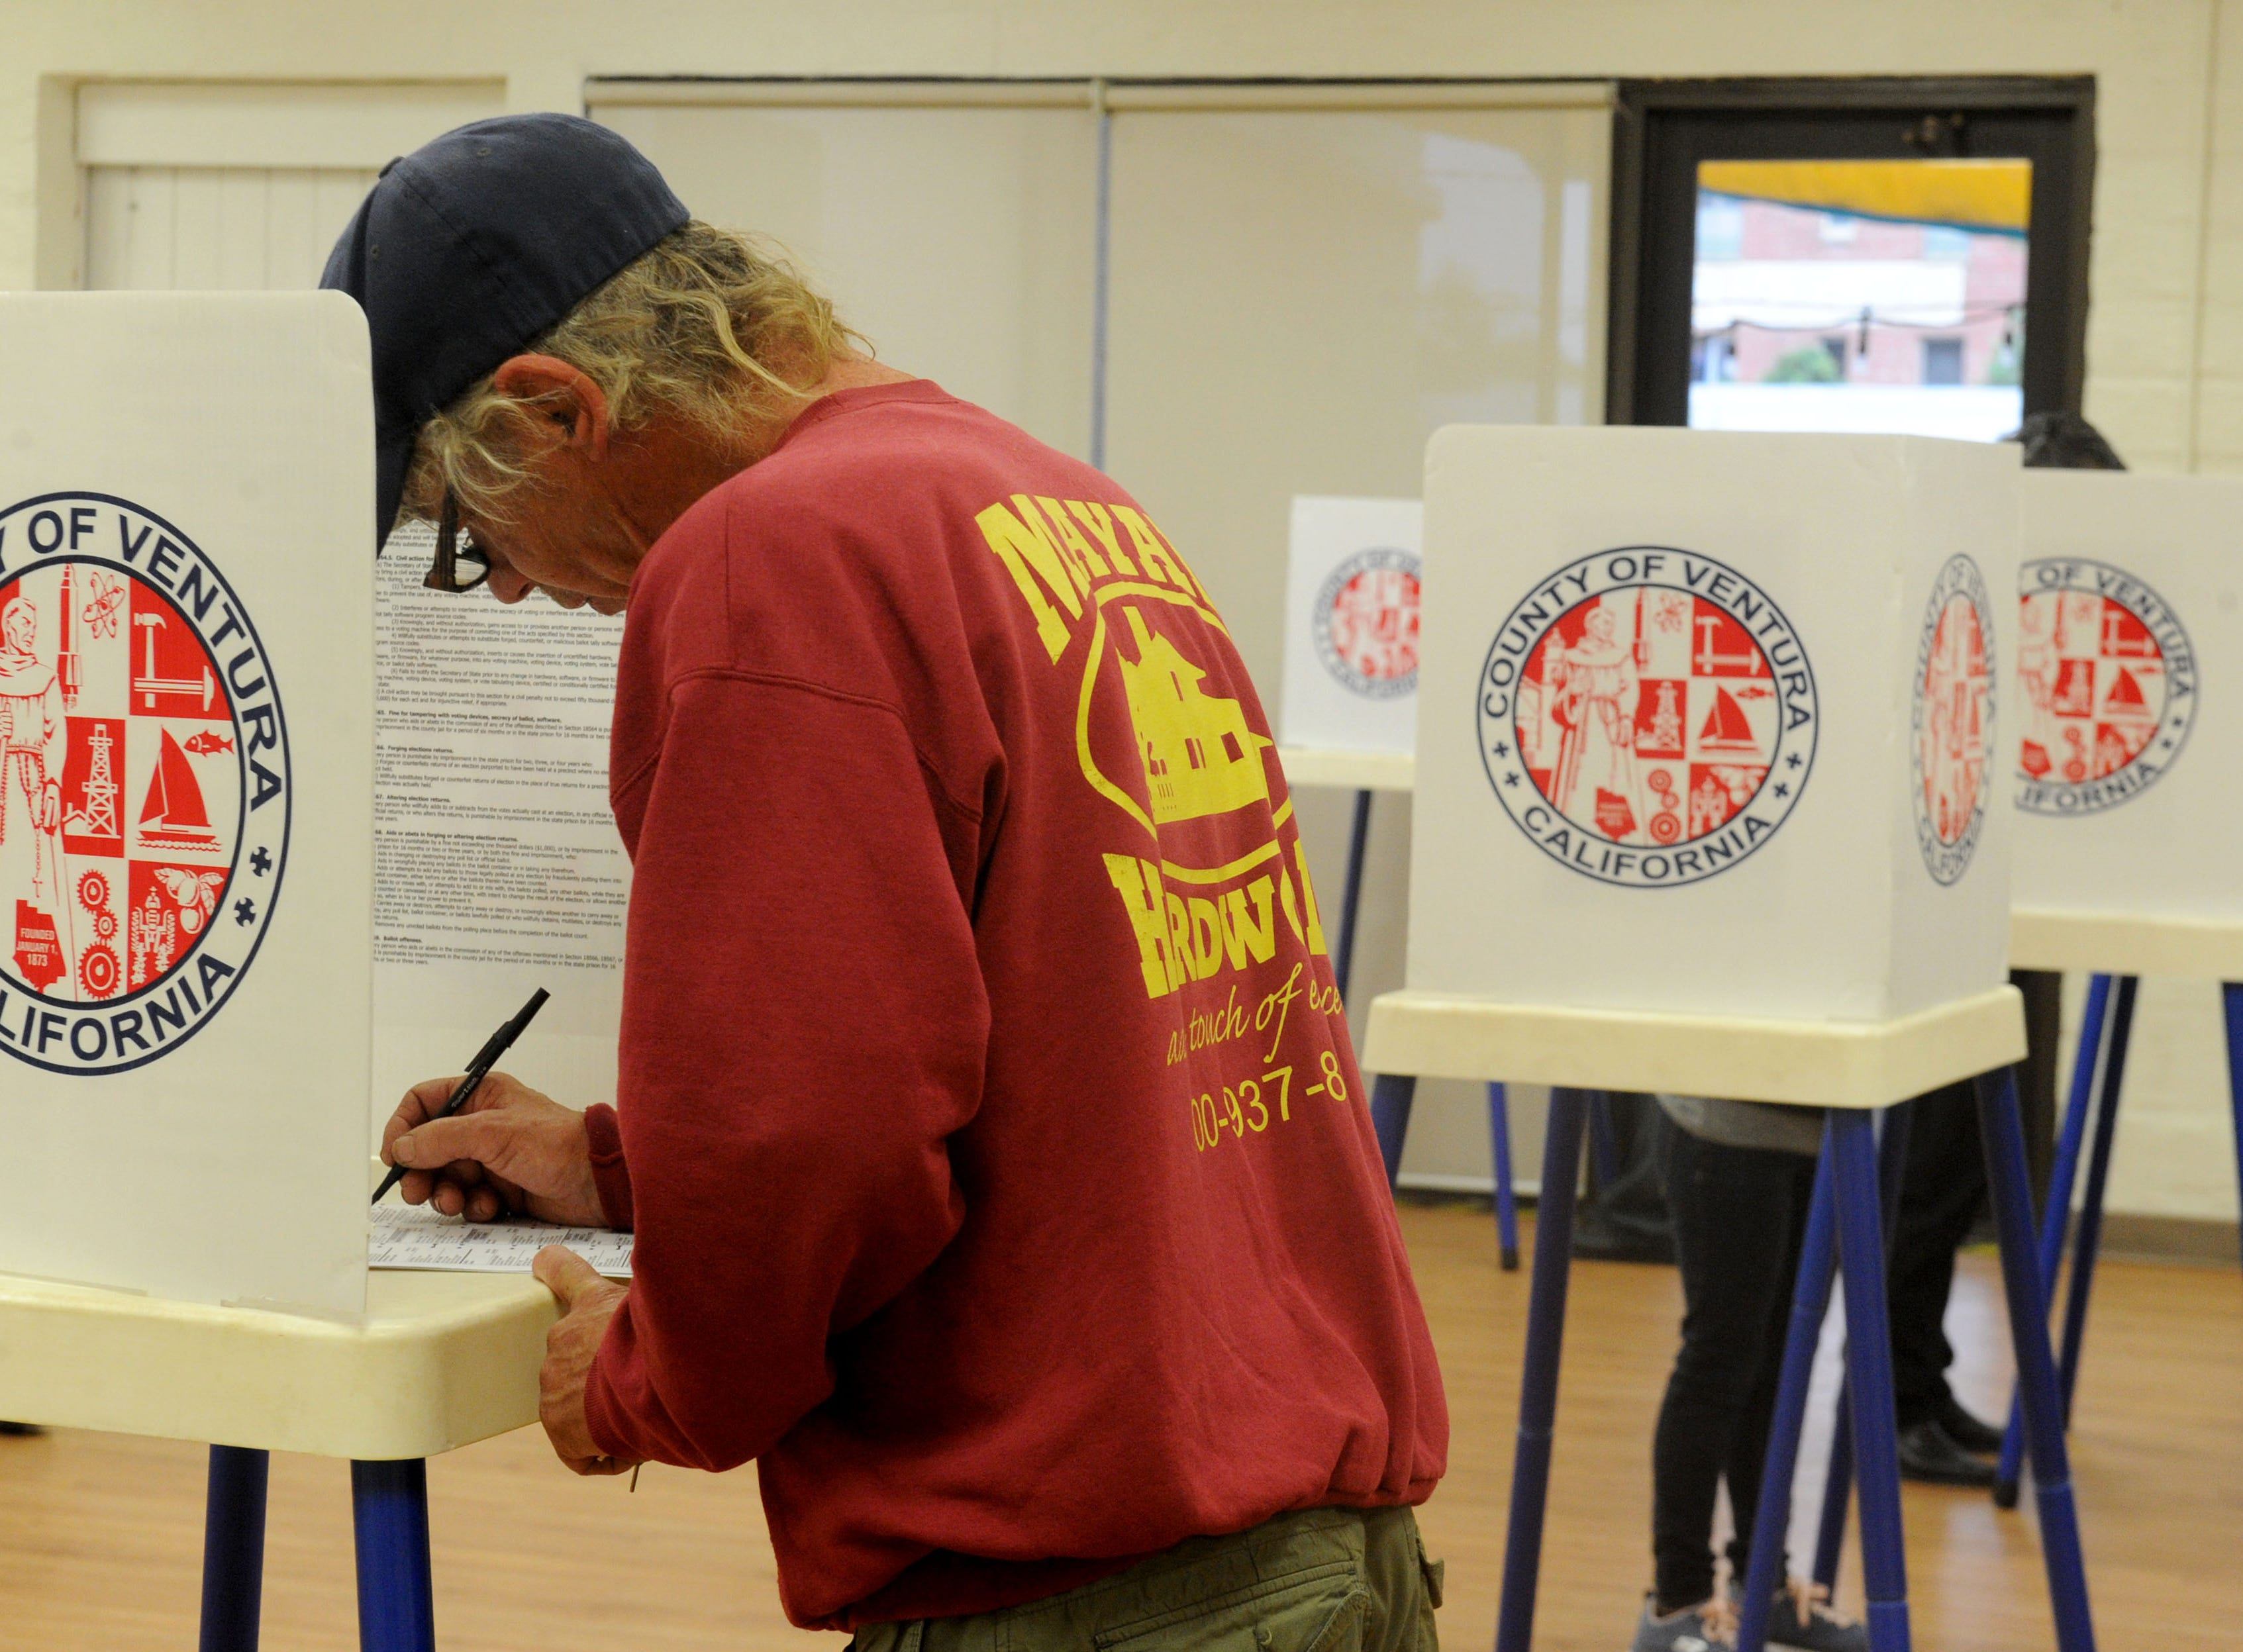 Russel Erickson votes in the morning at Ventura Avenue Adult Center. The center had a line of about 20 people.